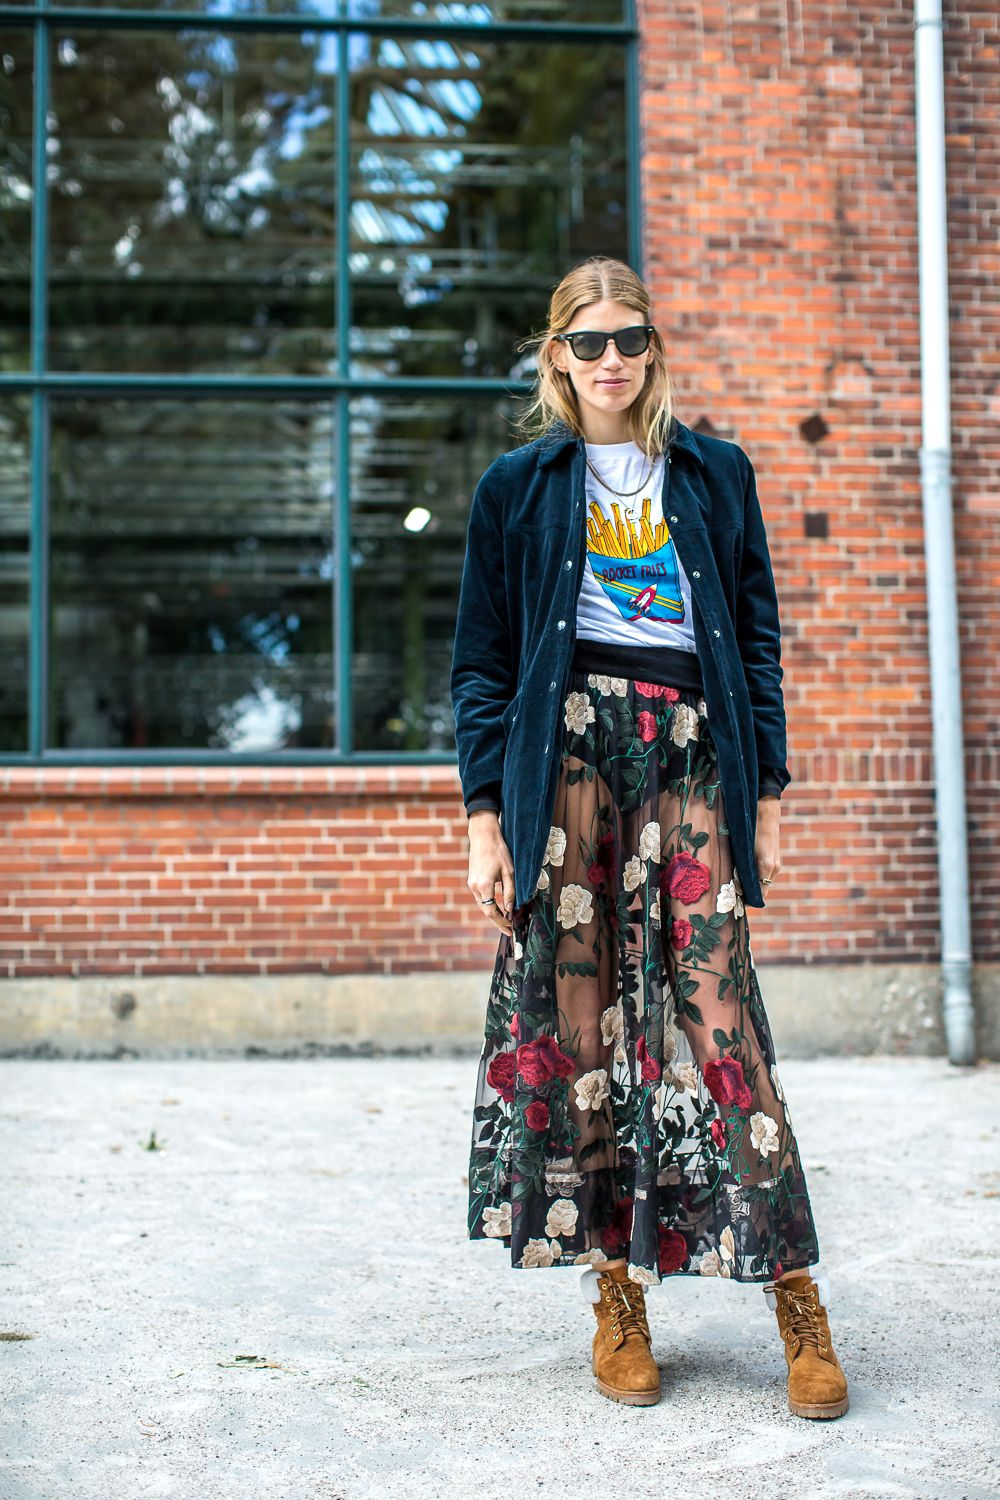 a8858ac52f velvet shirt layered with comic graphic t-shirt and decorative transparent  maxi skirt. Saved by Gabby Fincham.